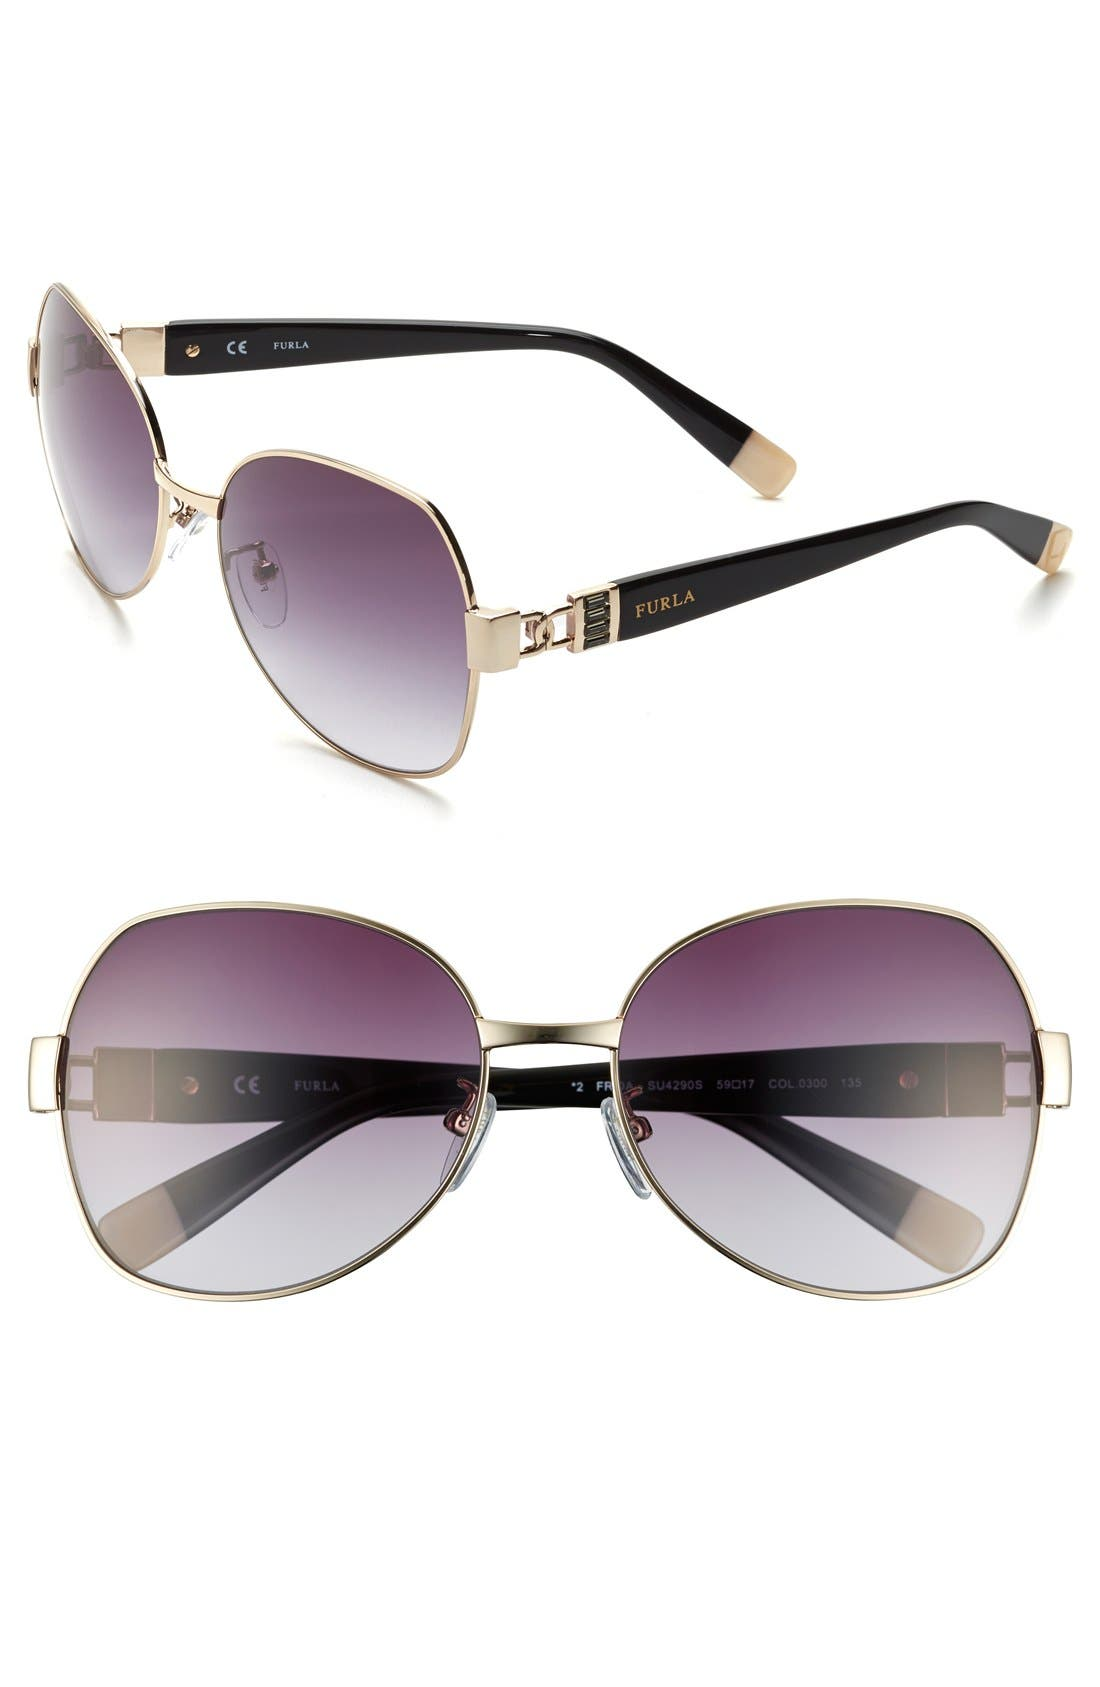 Alternate Image 1 Selected - Furla 59mm Swarovski Crystal Sunglasses